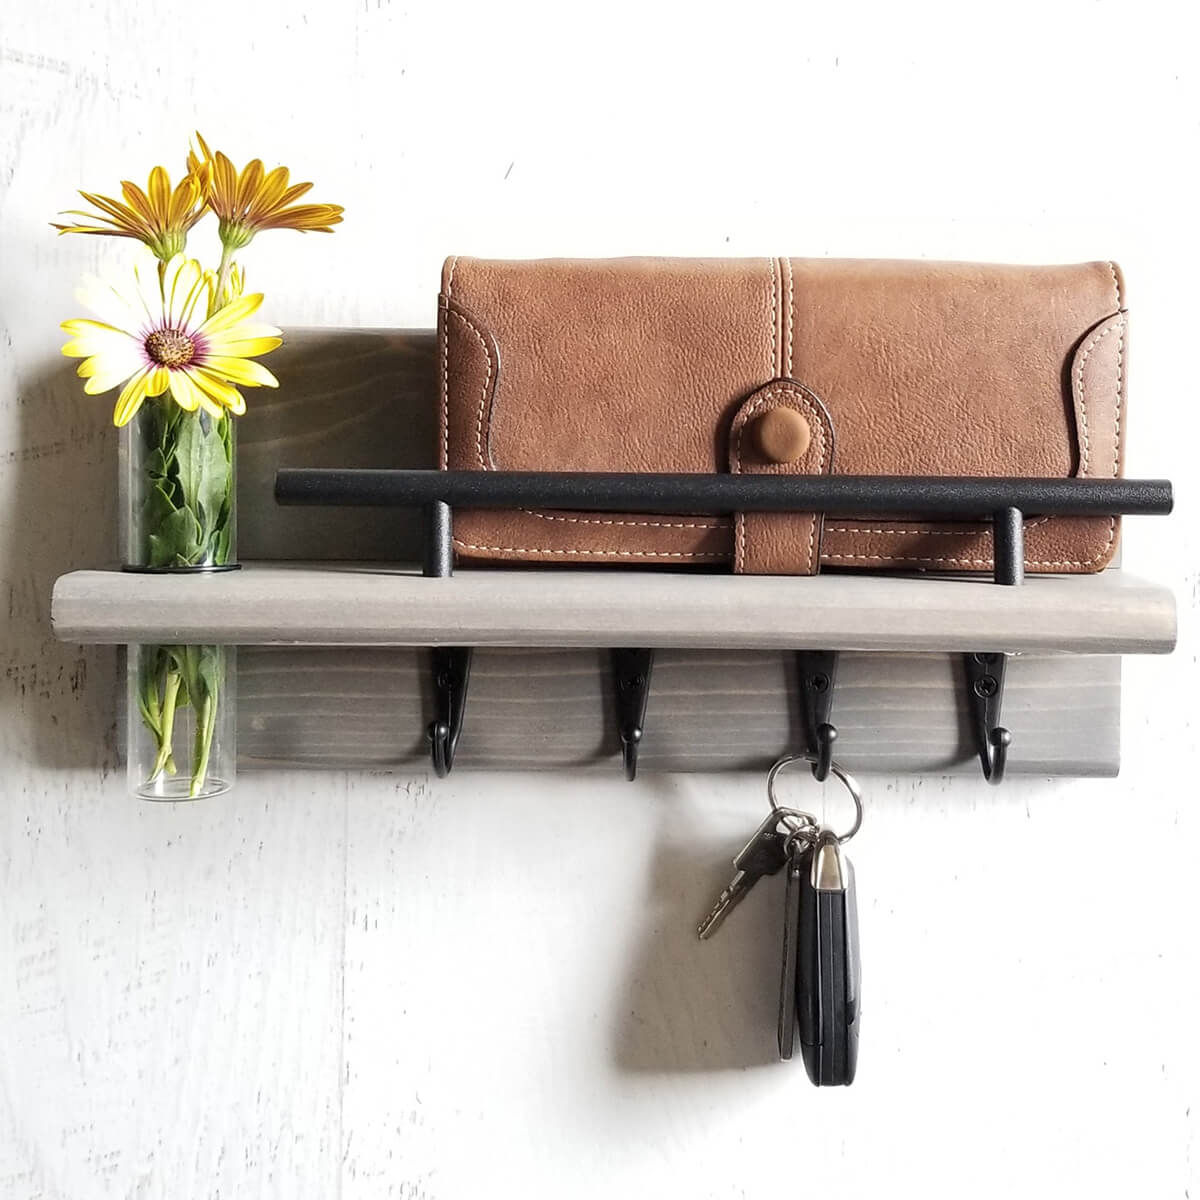 Farmhouse Key Keeper for Wall Mount Organization